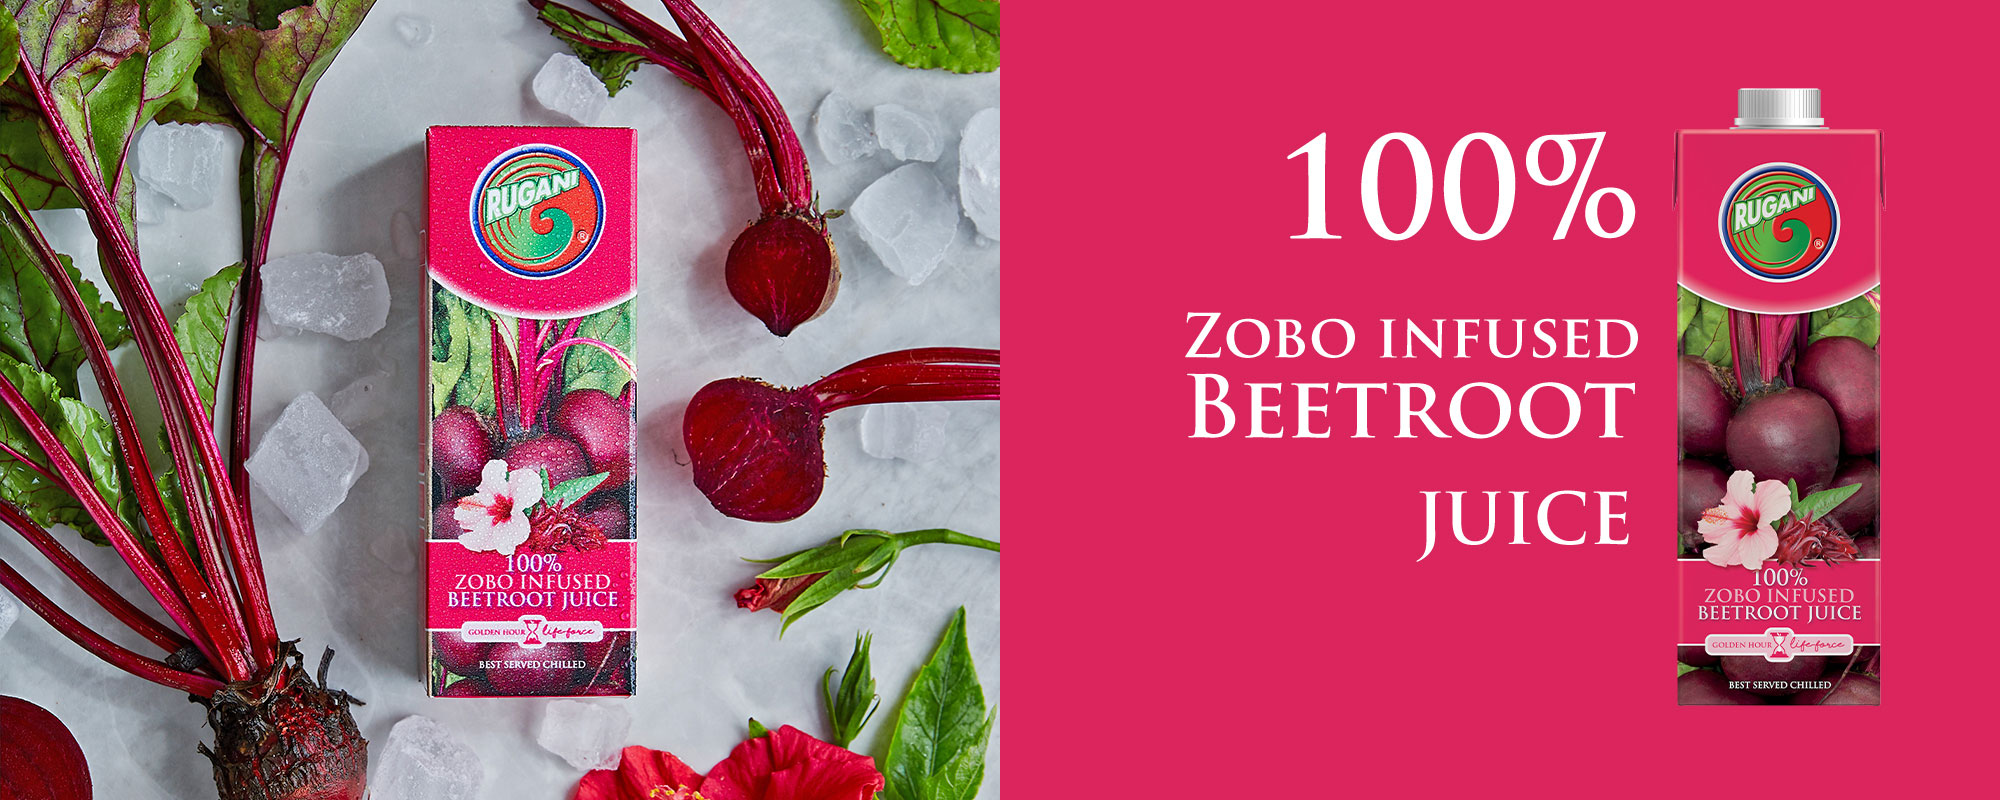 100% Zobo Infused Beetroot Juice